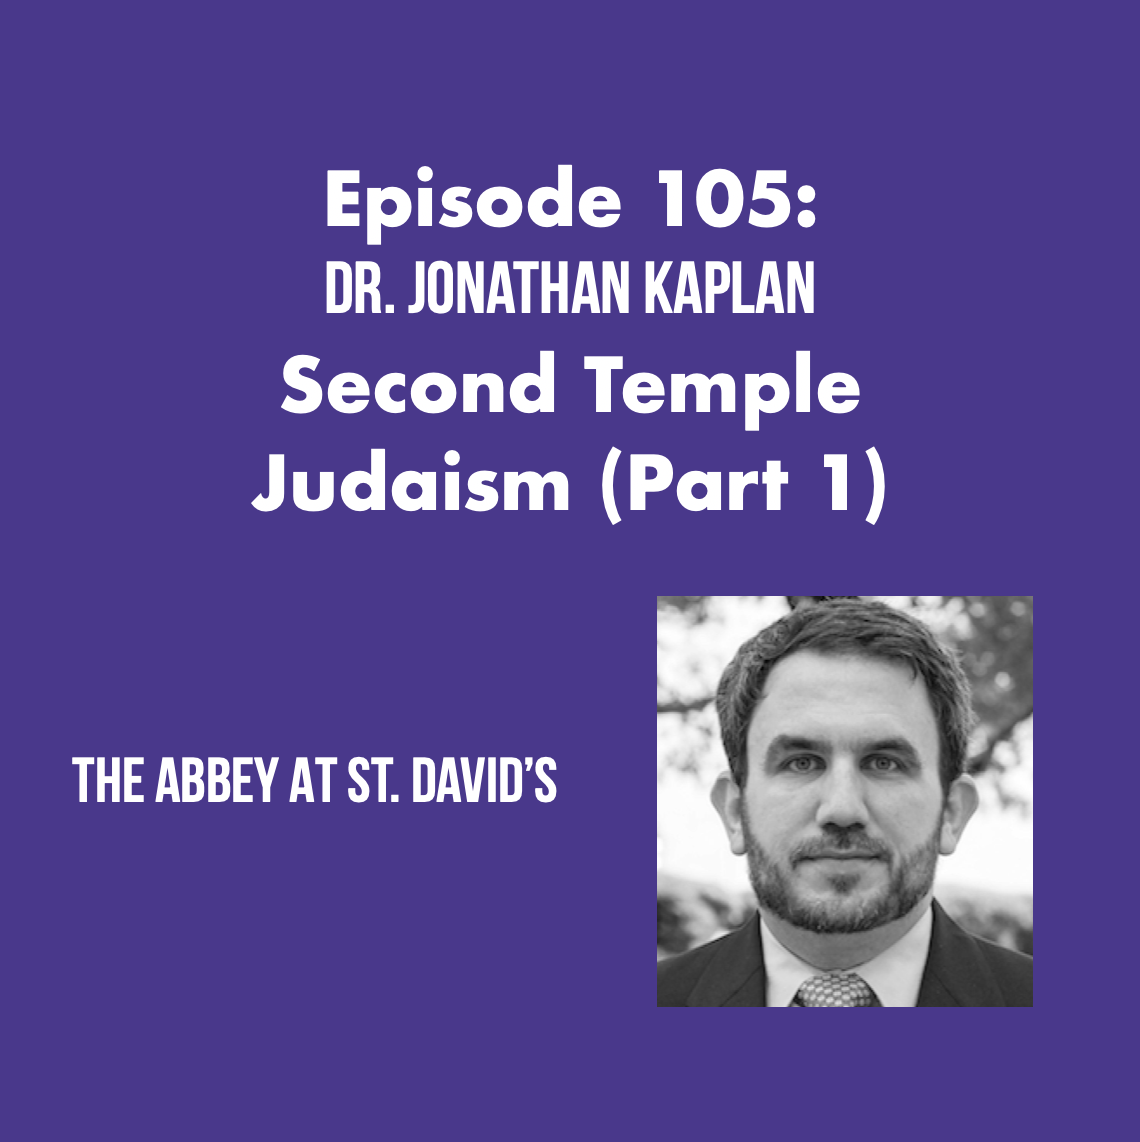 Episode 105: Second Temple Judaism (Part 1) with Dr. Jonathan Kaplan